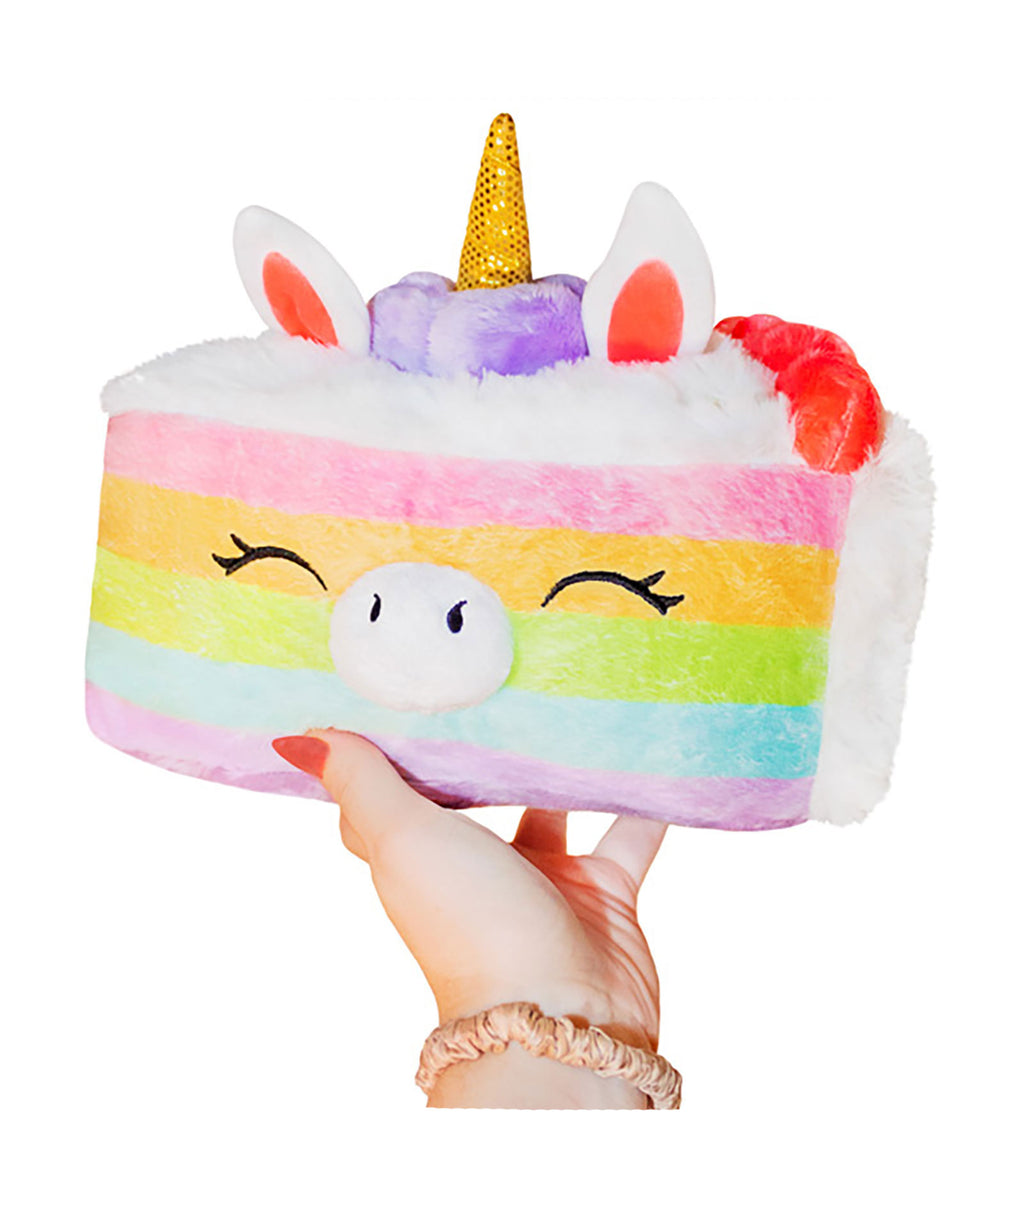 Squishable Mini Unicorn Cake